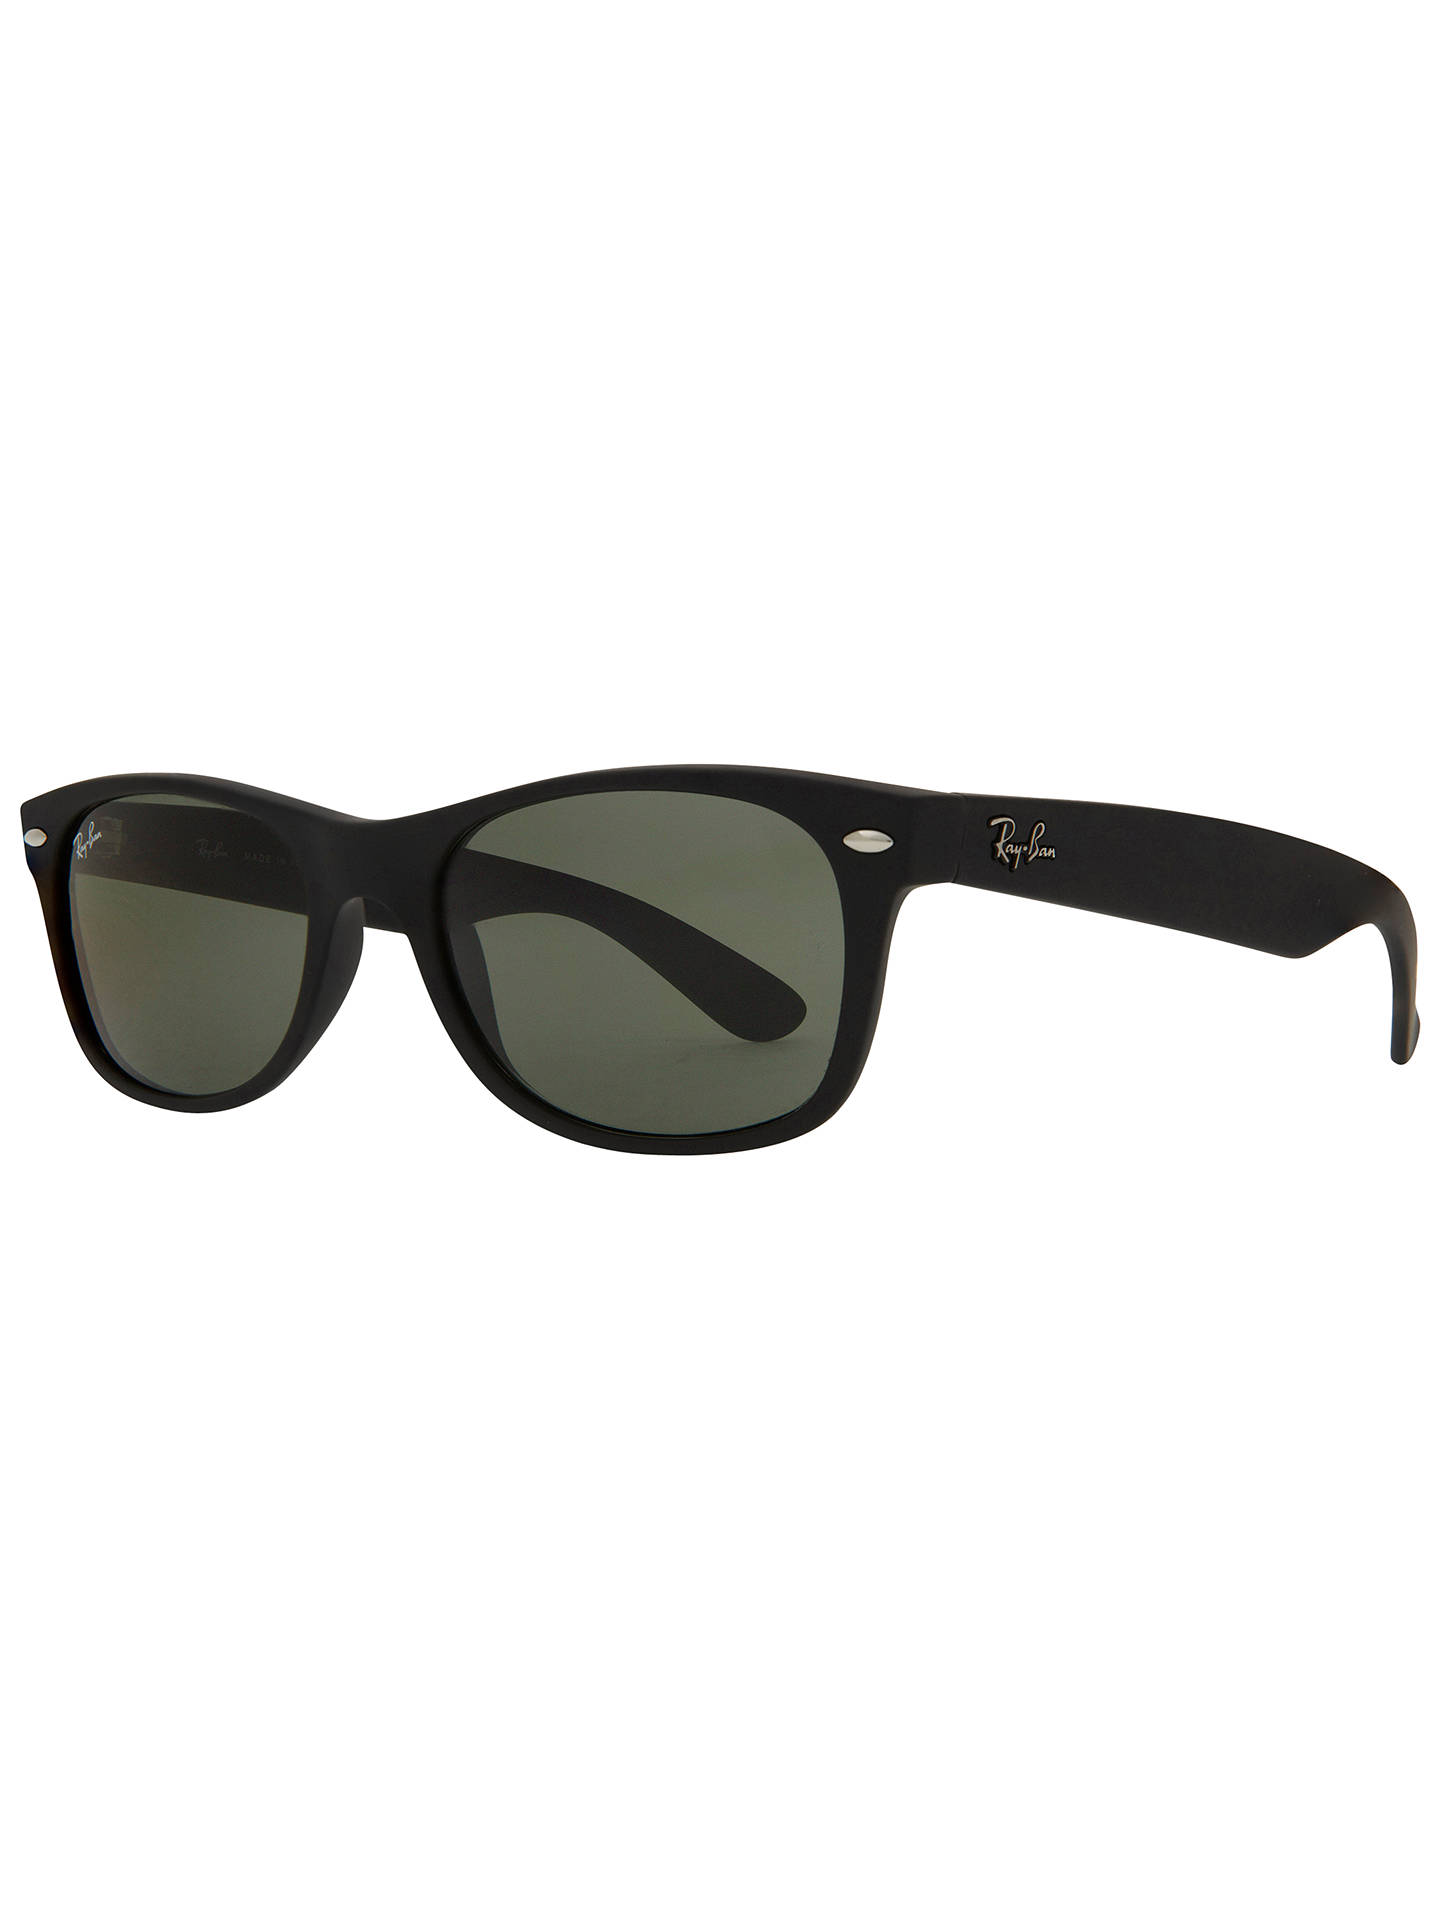 09fba23cda725 Previous Image Next Image. Buy Ray-Ban RB2132 New Wayfarer Sunglasses